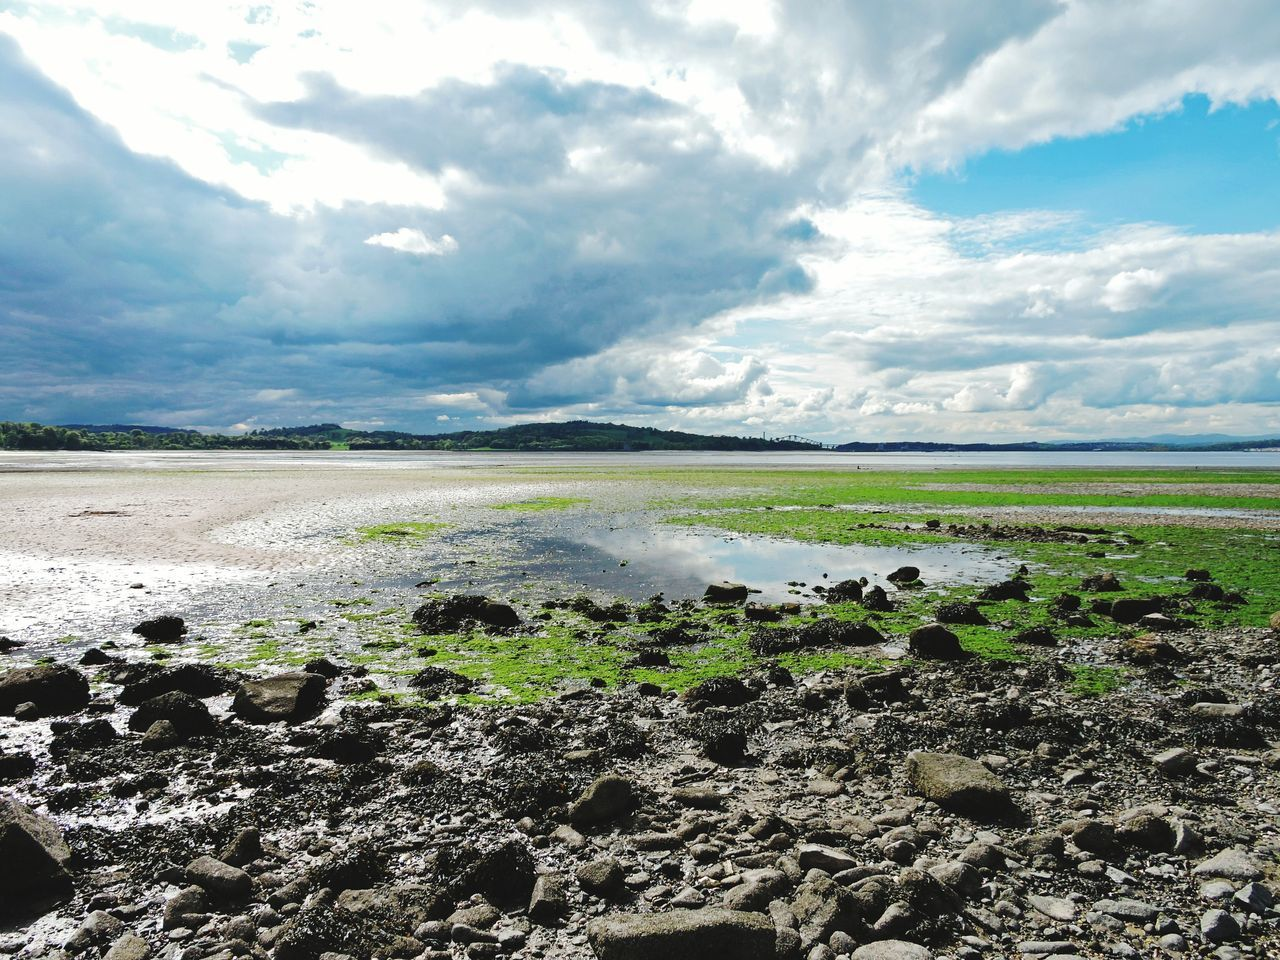 View of Cramond Beach from Cramond Island at low tide. Scotland Edinburgh Beach Scottish Beaches Travel Hiking Trecking Urban Trecking Urban Hiking Microadventure Cramond Island Spring Scottish Tourism